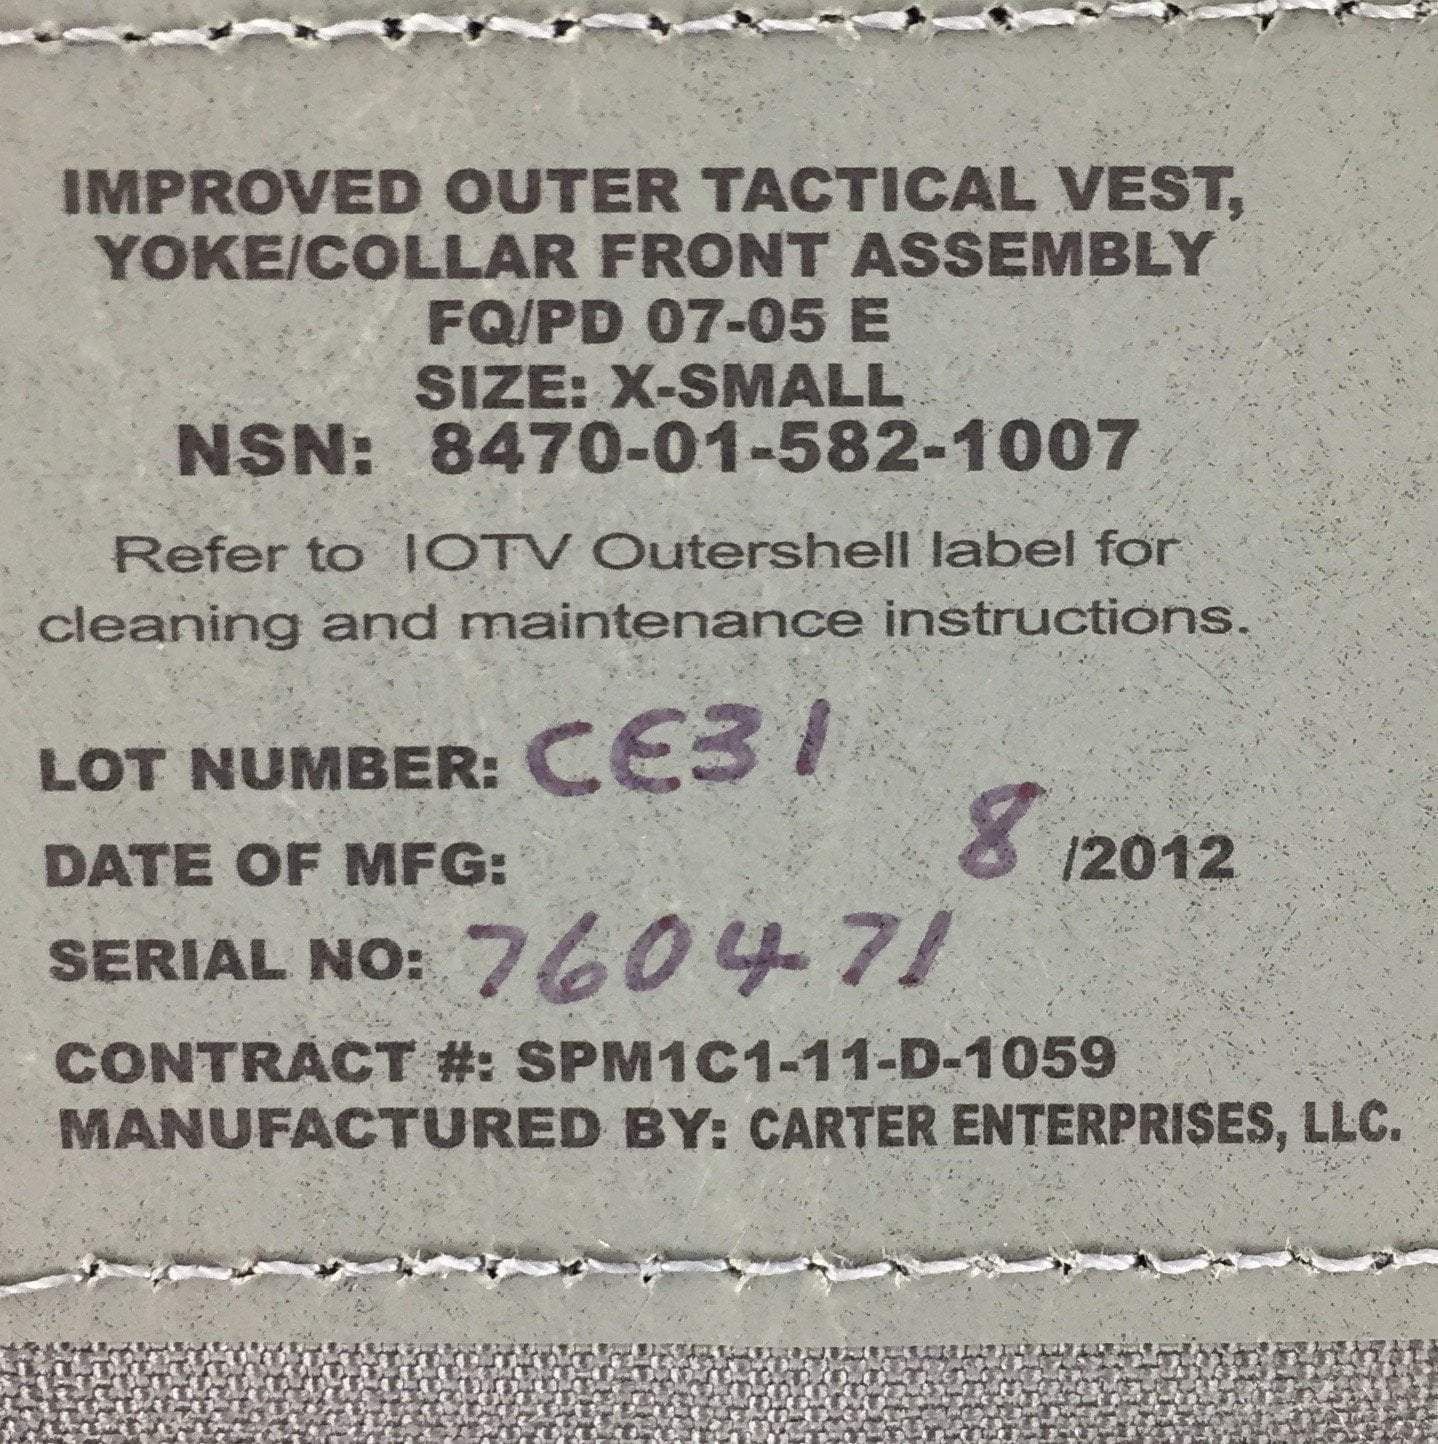 ACU Yoke and Collar Front Assembly for IOTV